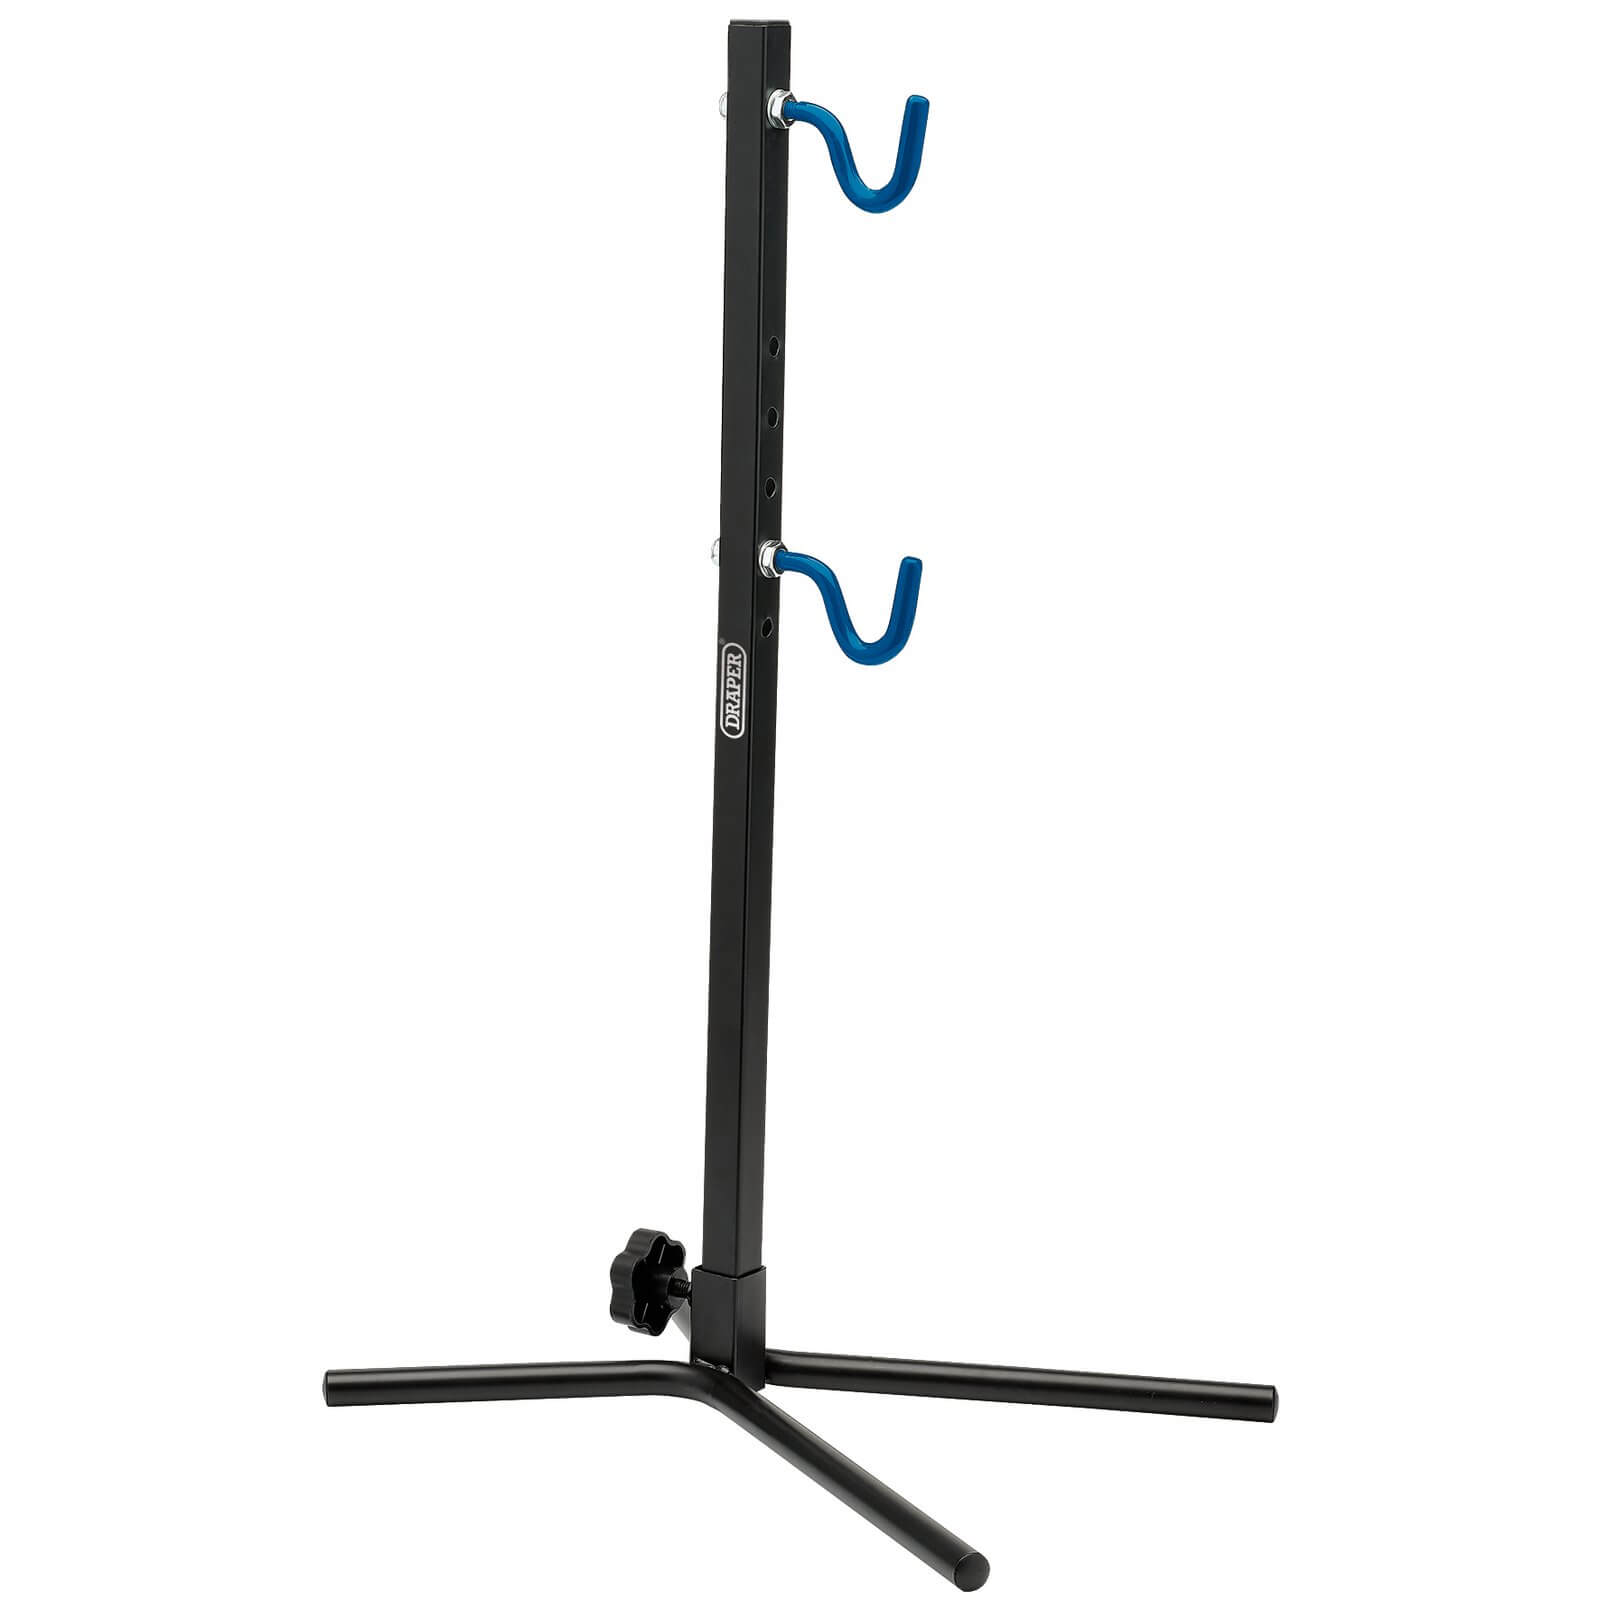 Image of Draper Bicycle Cleaning Display Stand